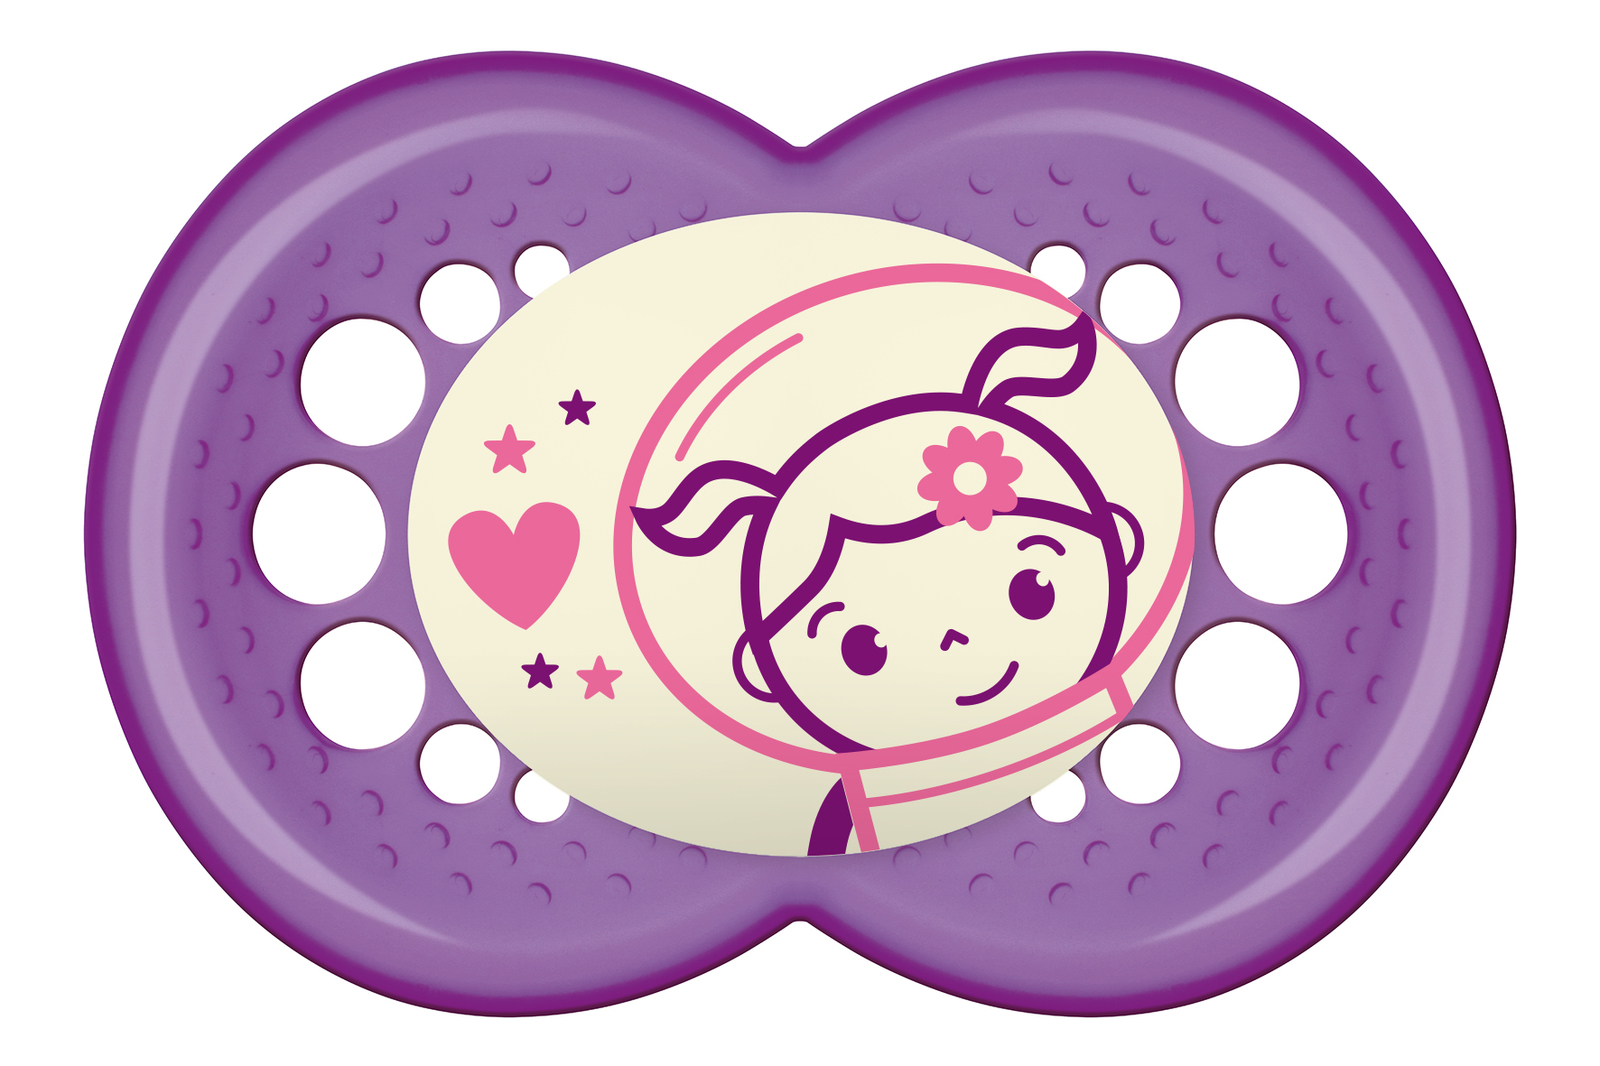 MAM Night Silicone Soother 4-24 Months - 2 Pack (Pink) image